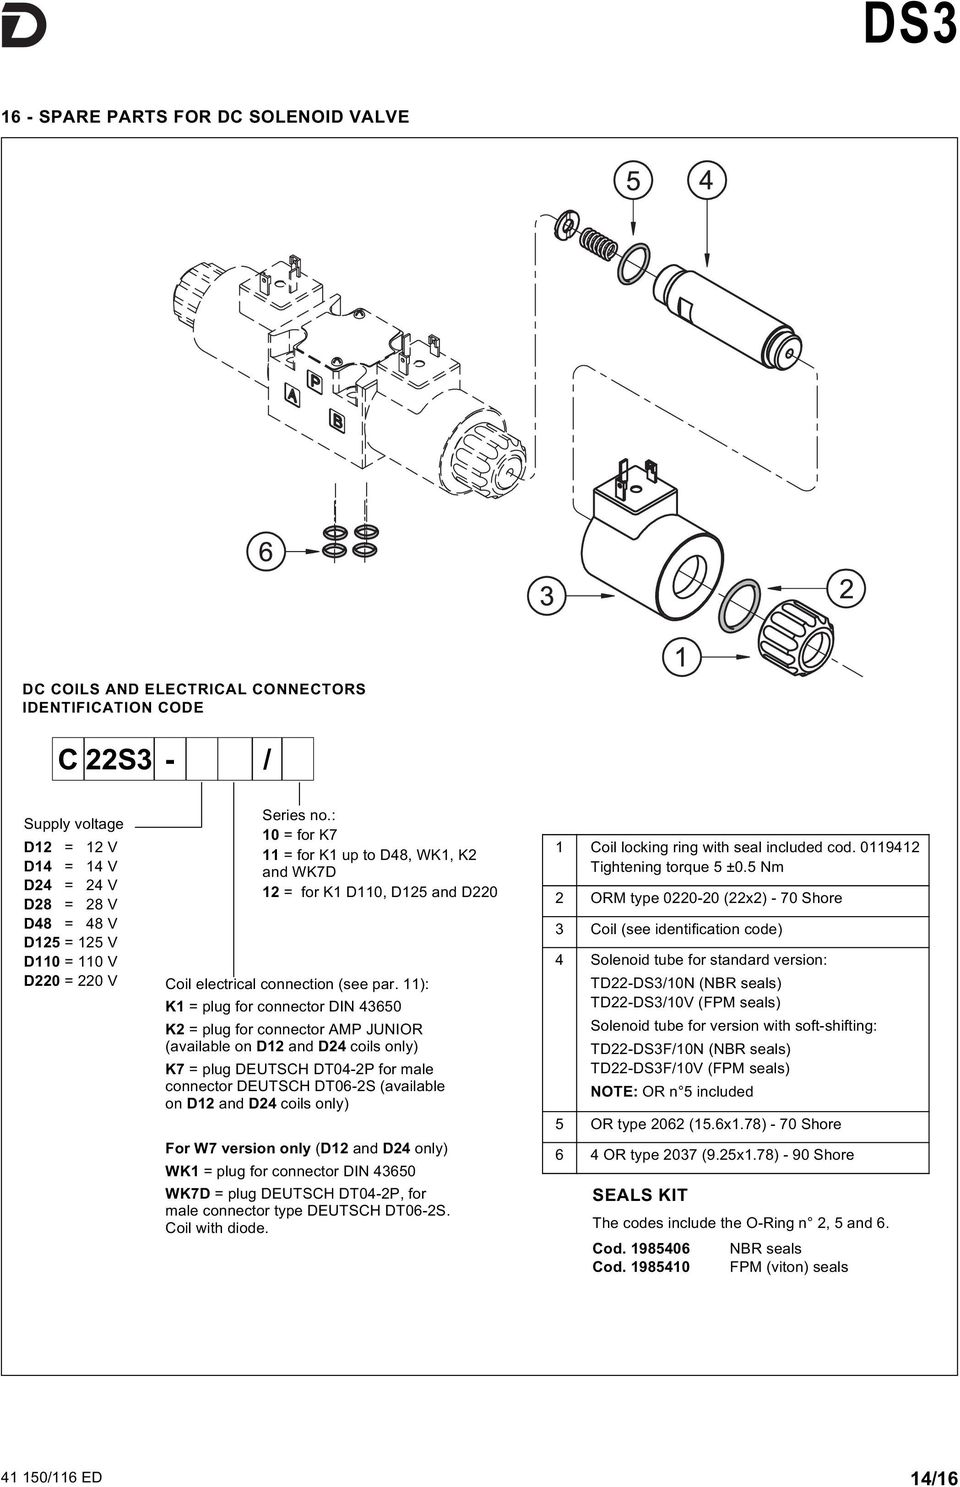 11): K1 = plug for connector DIN 43650 K2 = plug for connector AMP JUNIOR (available on D12 and D24 coils only) K7 = plug DEUTSCH DT04-2P for male connector DEUTSCH DT06-2S (available on D12 and D24